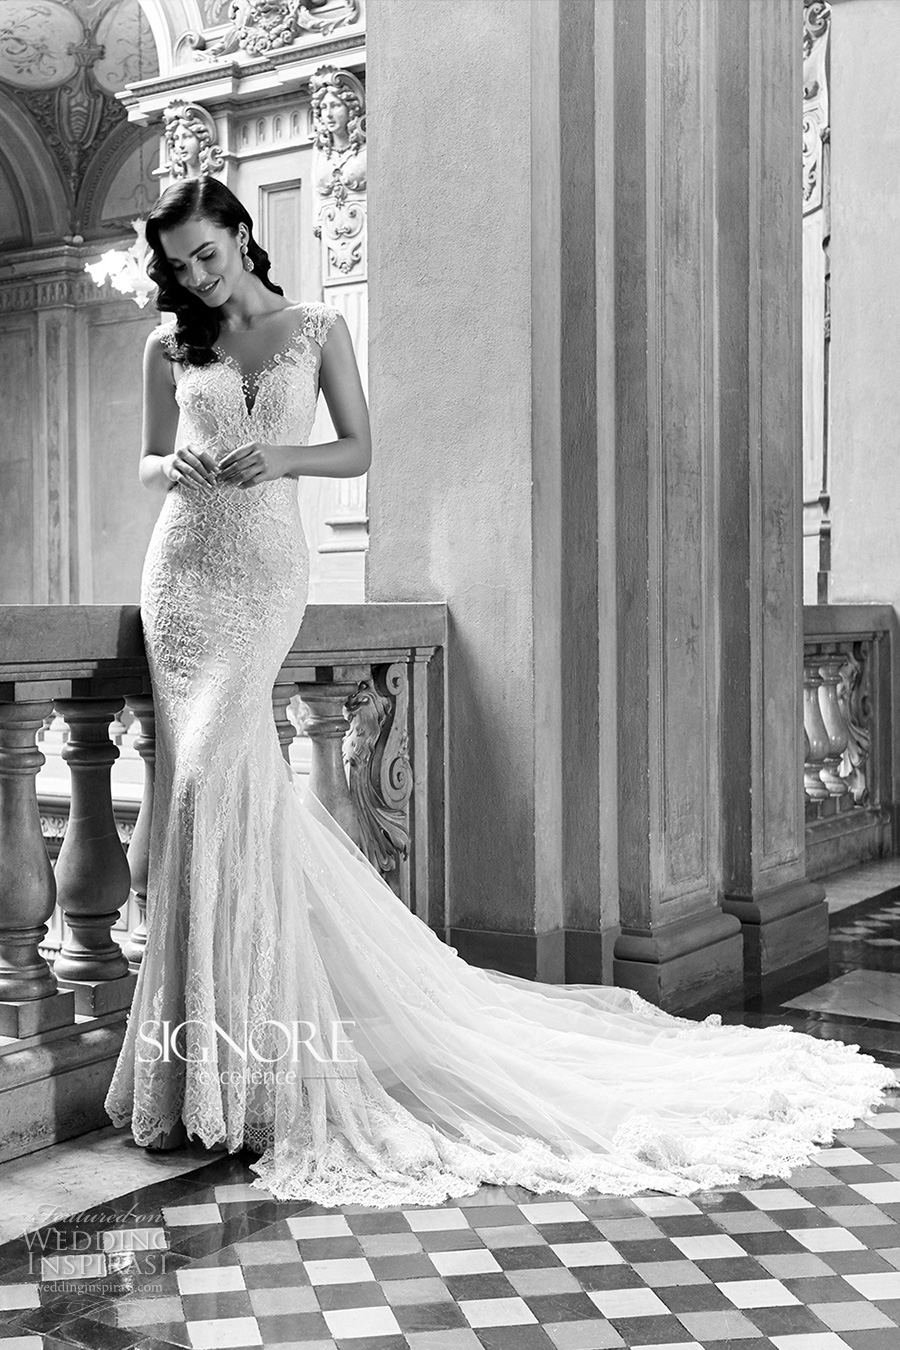 signore excellence 2017 bridal sheer thick strap sweet heart plunging neckline fully embellished elegant sexy sheath wedding dress lace back chapel train (era) mv